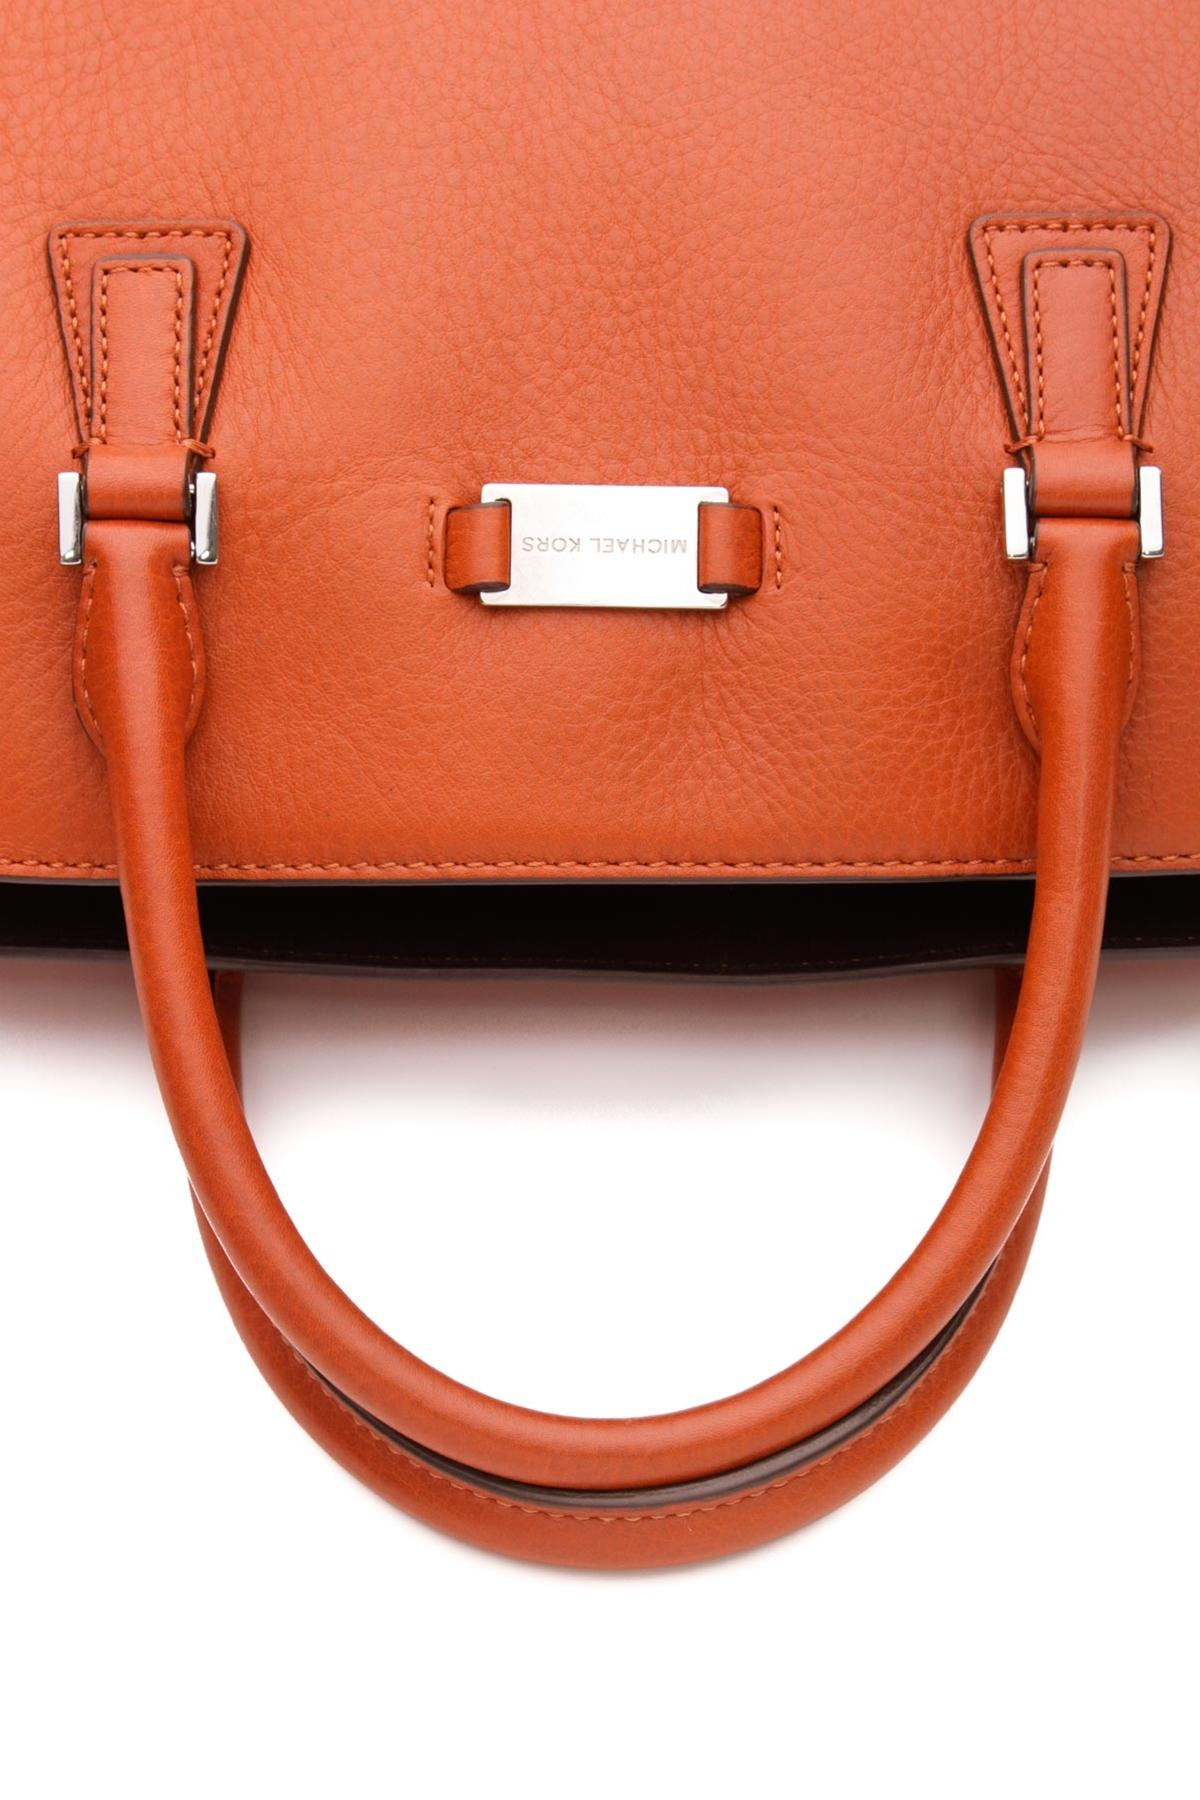 e5f67e2e61f936 sale michael kors calfskin leather gia satchel shoulder bag tradesy 6fb20  8b635